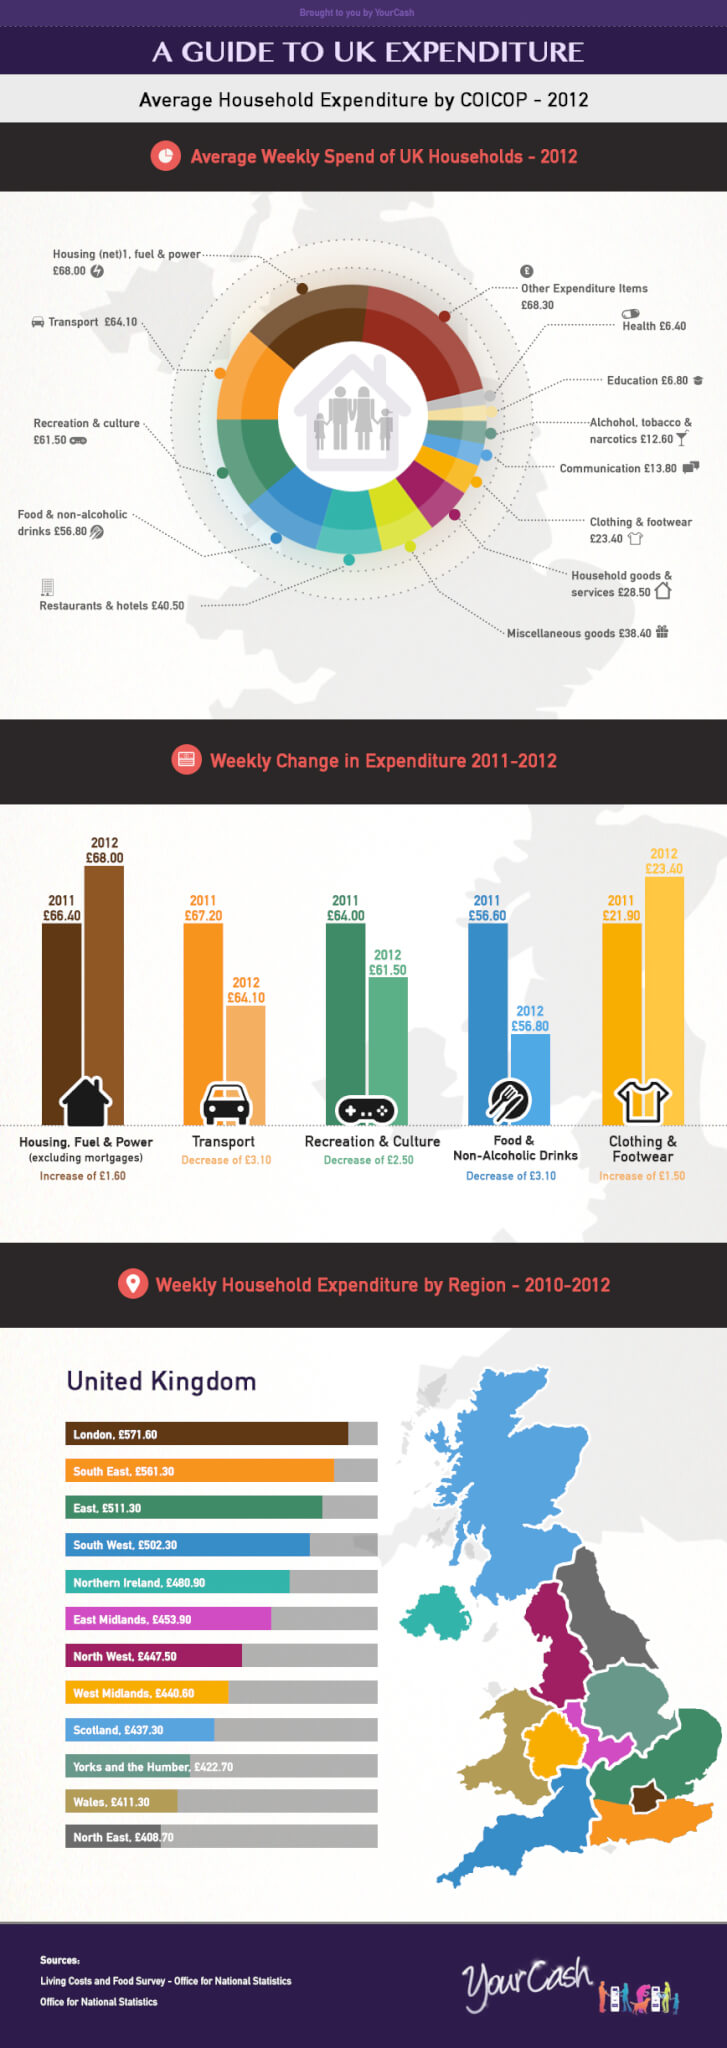 A guide to UK family expenditure